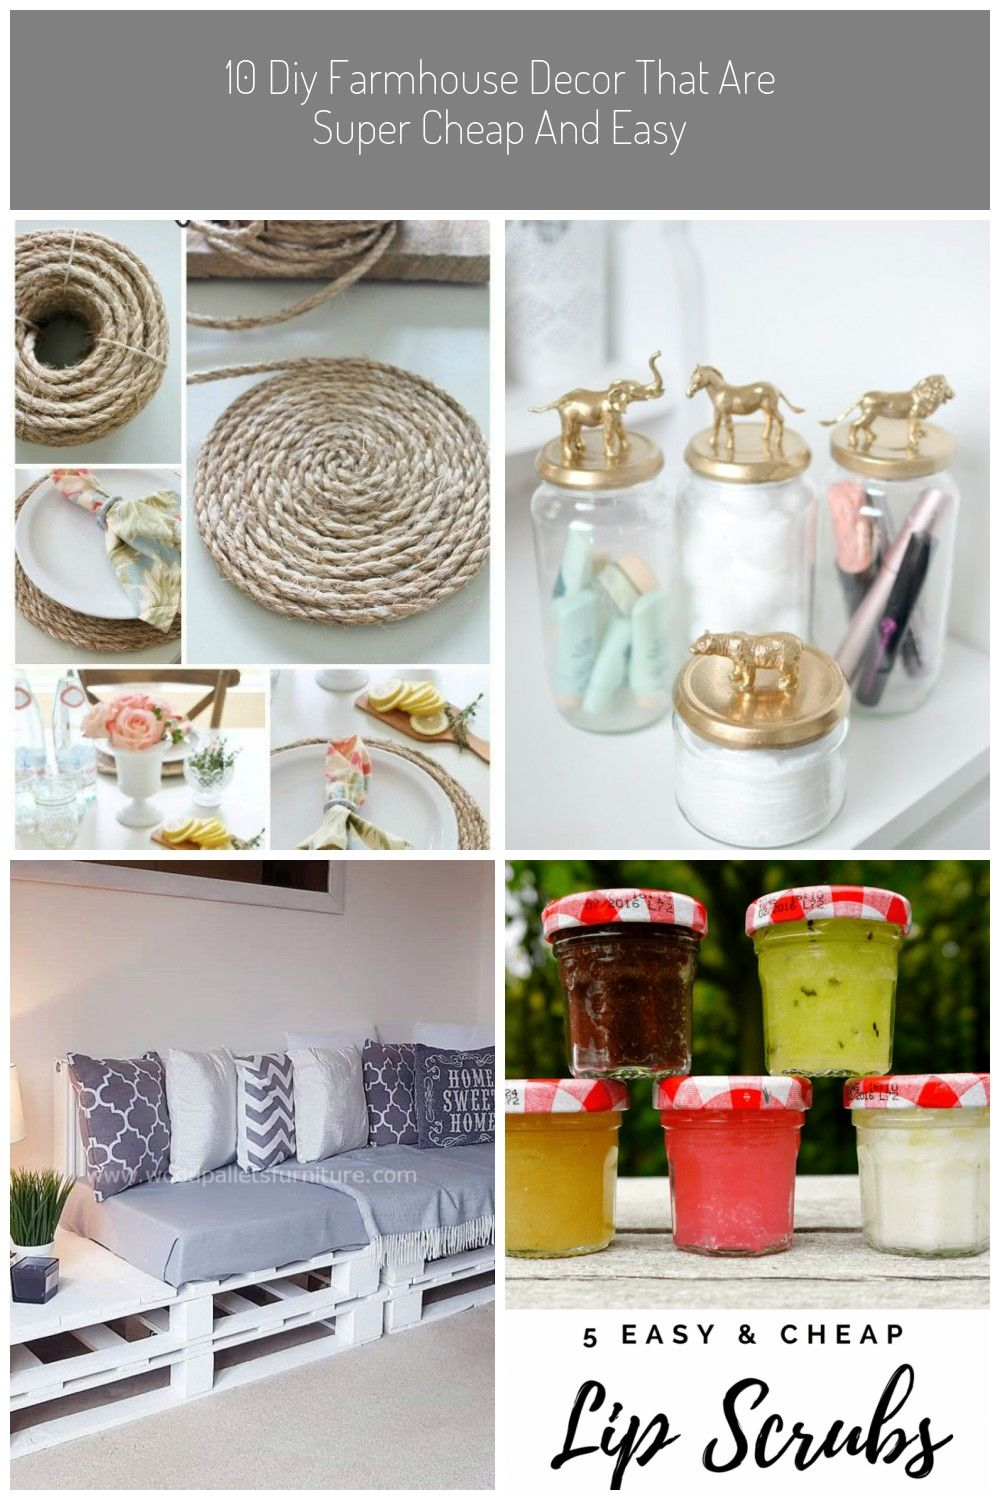 Super Easy And Cheap Diy Farmhouse Decor Ideas For Your Home Pottery Barn Inspired Round Jute Placemats And Others Diy Diy Home Decor Hom Farmhouse Decor Pottery Barn Inspired Diy